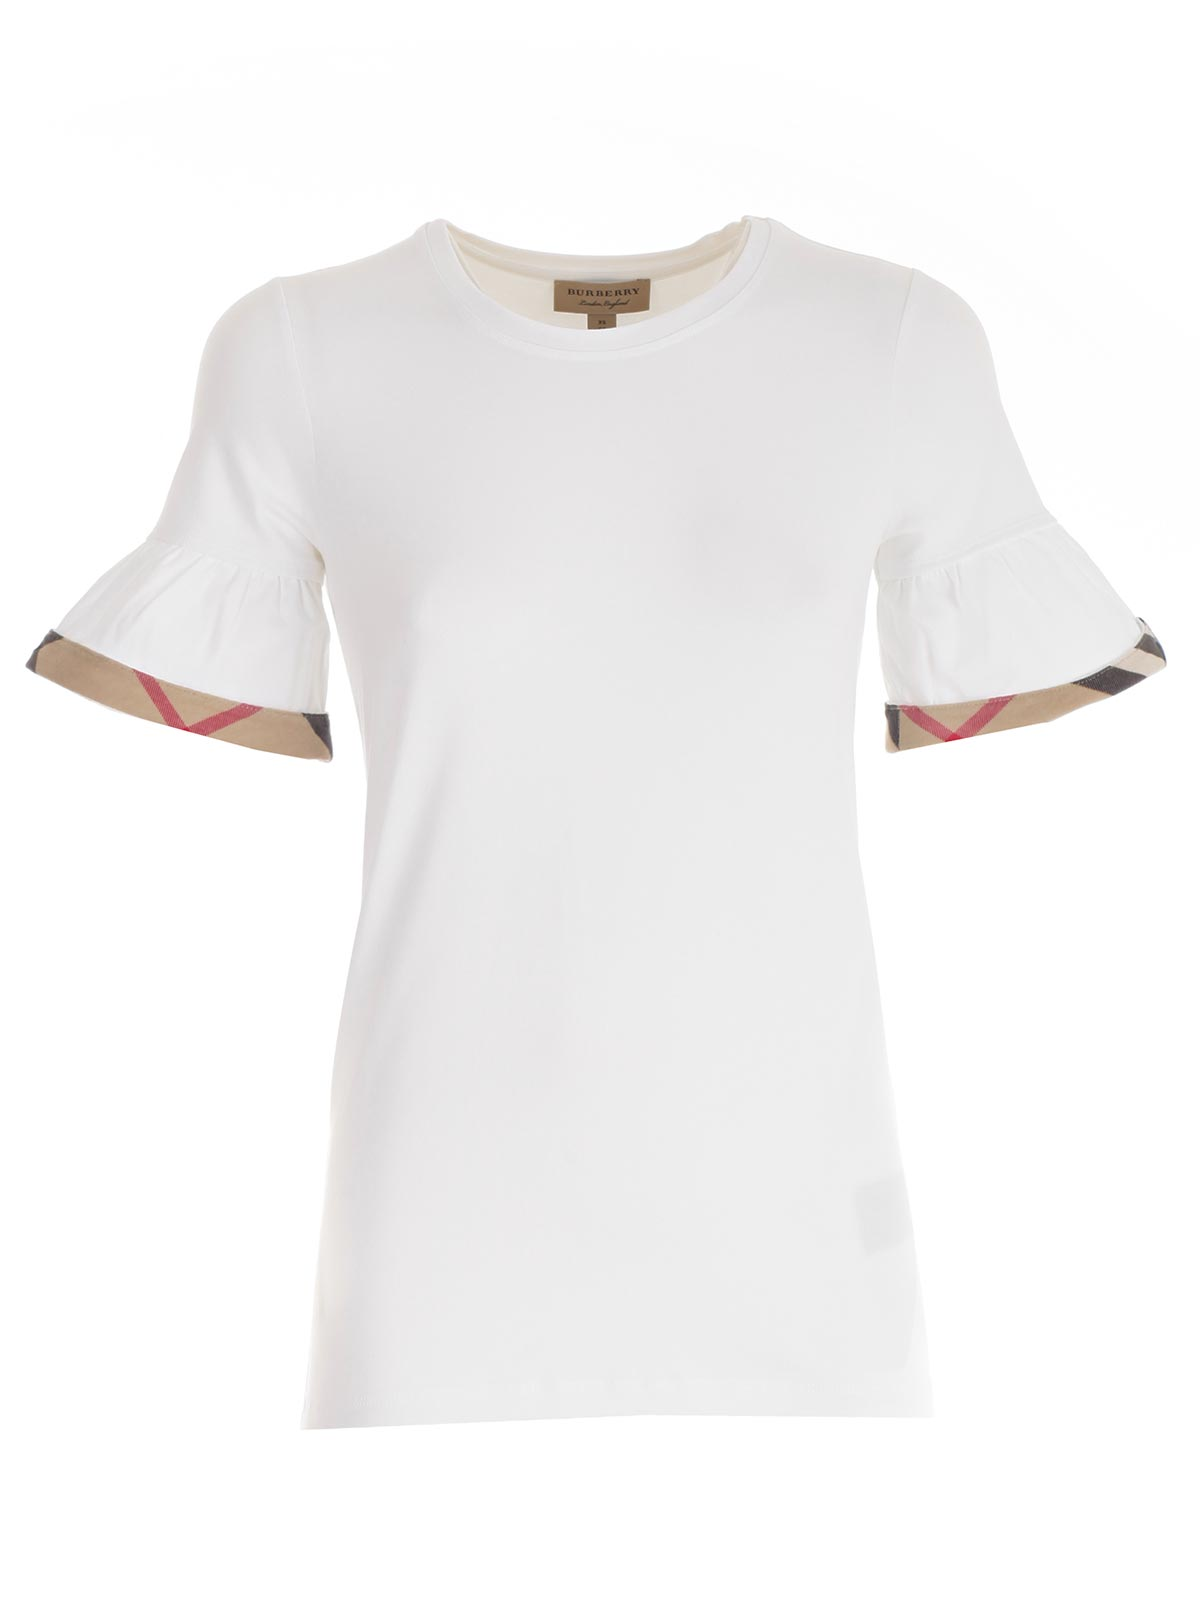 Picture of BURBERRY T-SHIRT SIC88079 T-SHIRT S/SLEEV WITH VOULANT